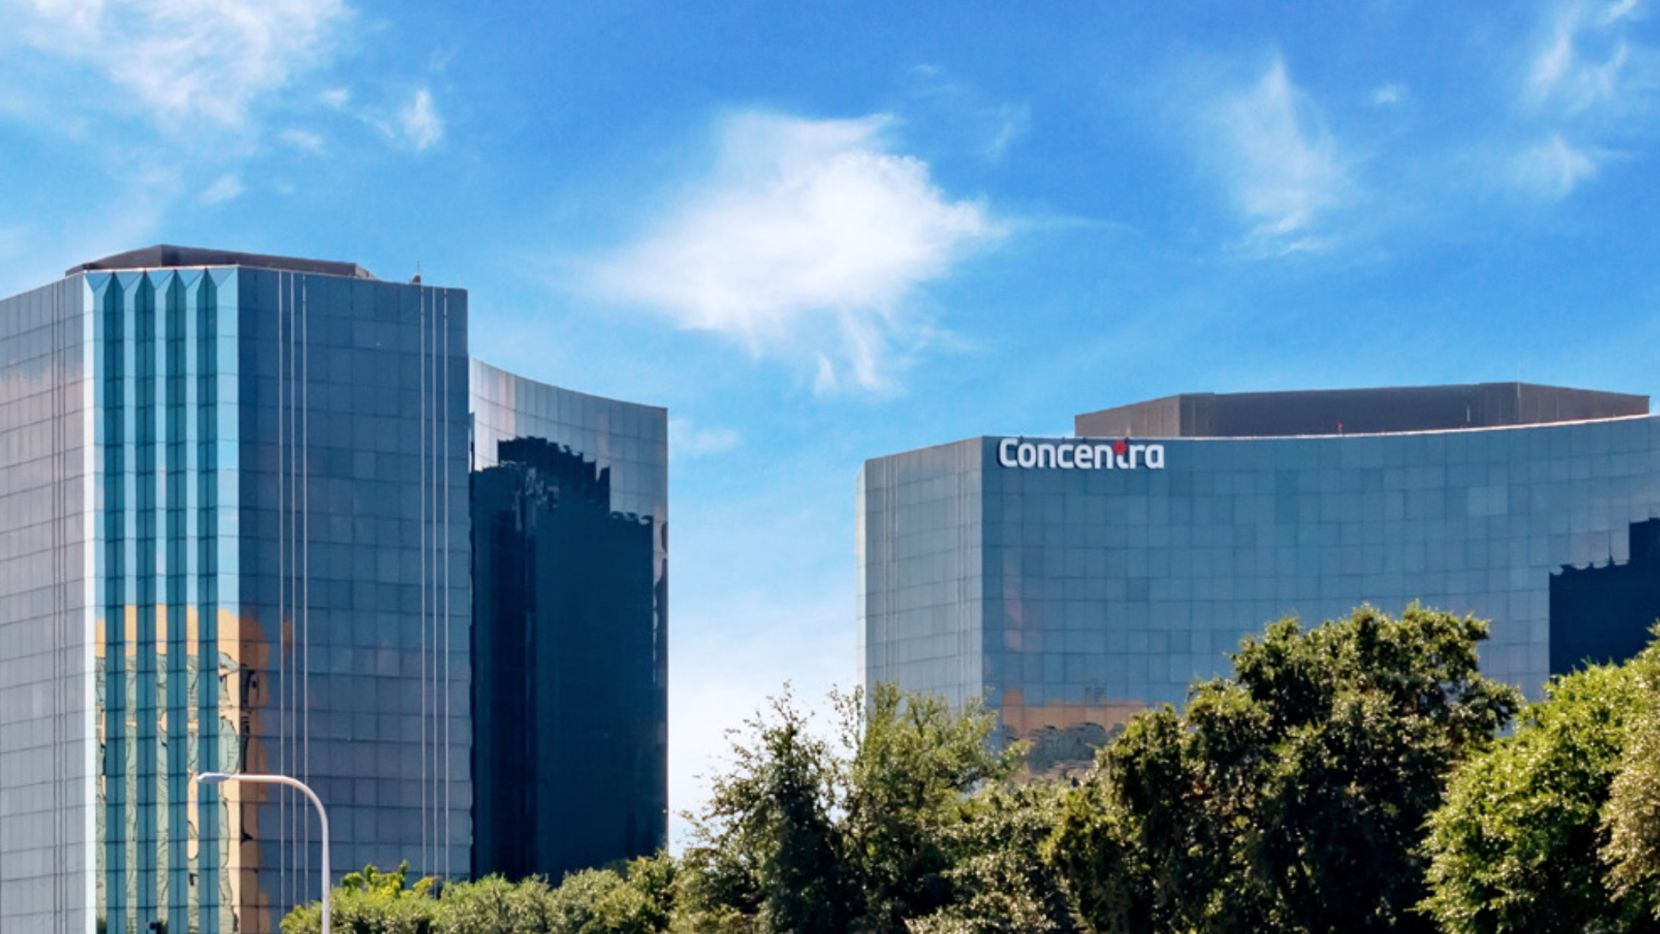 Spectrum Center has more than 600,000 square feet of office space.